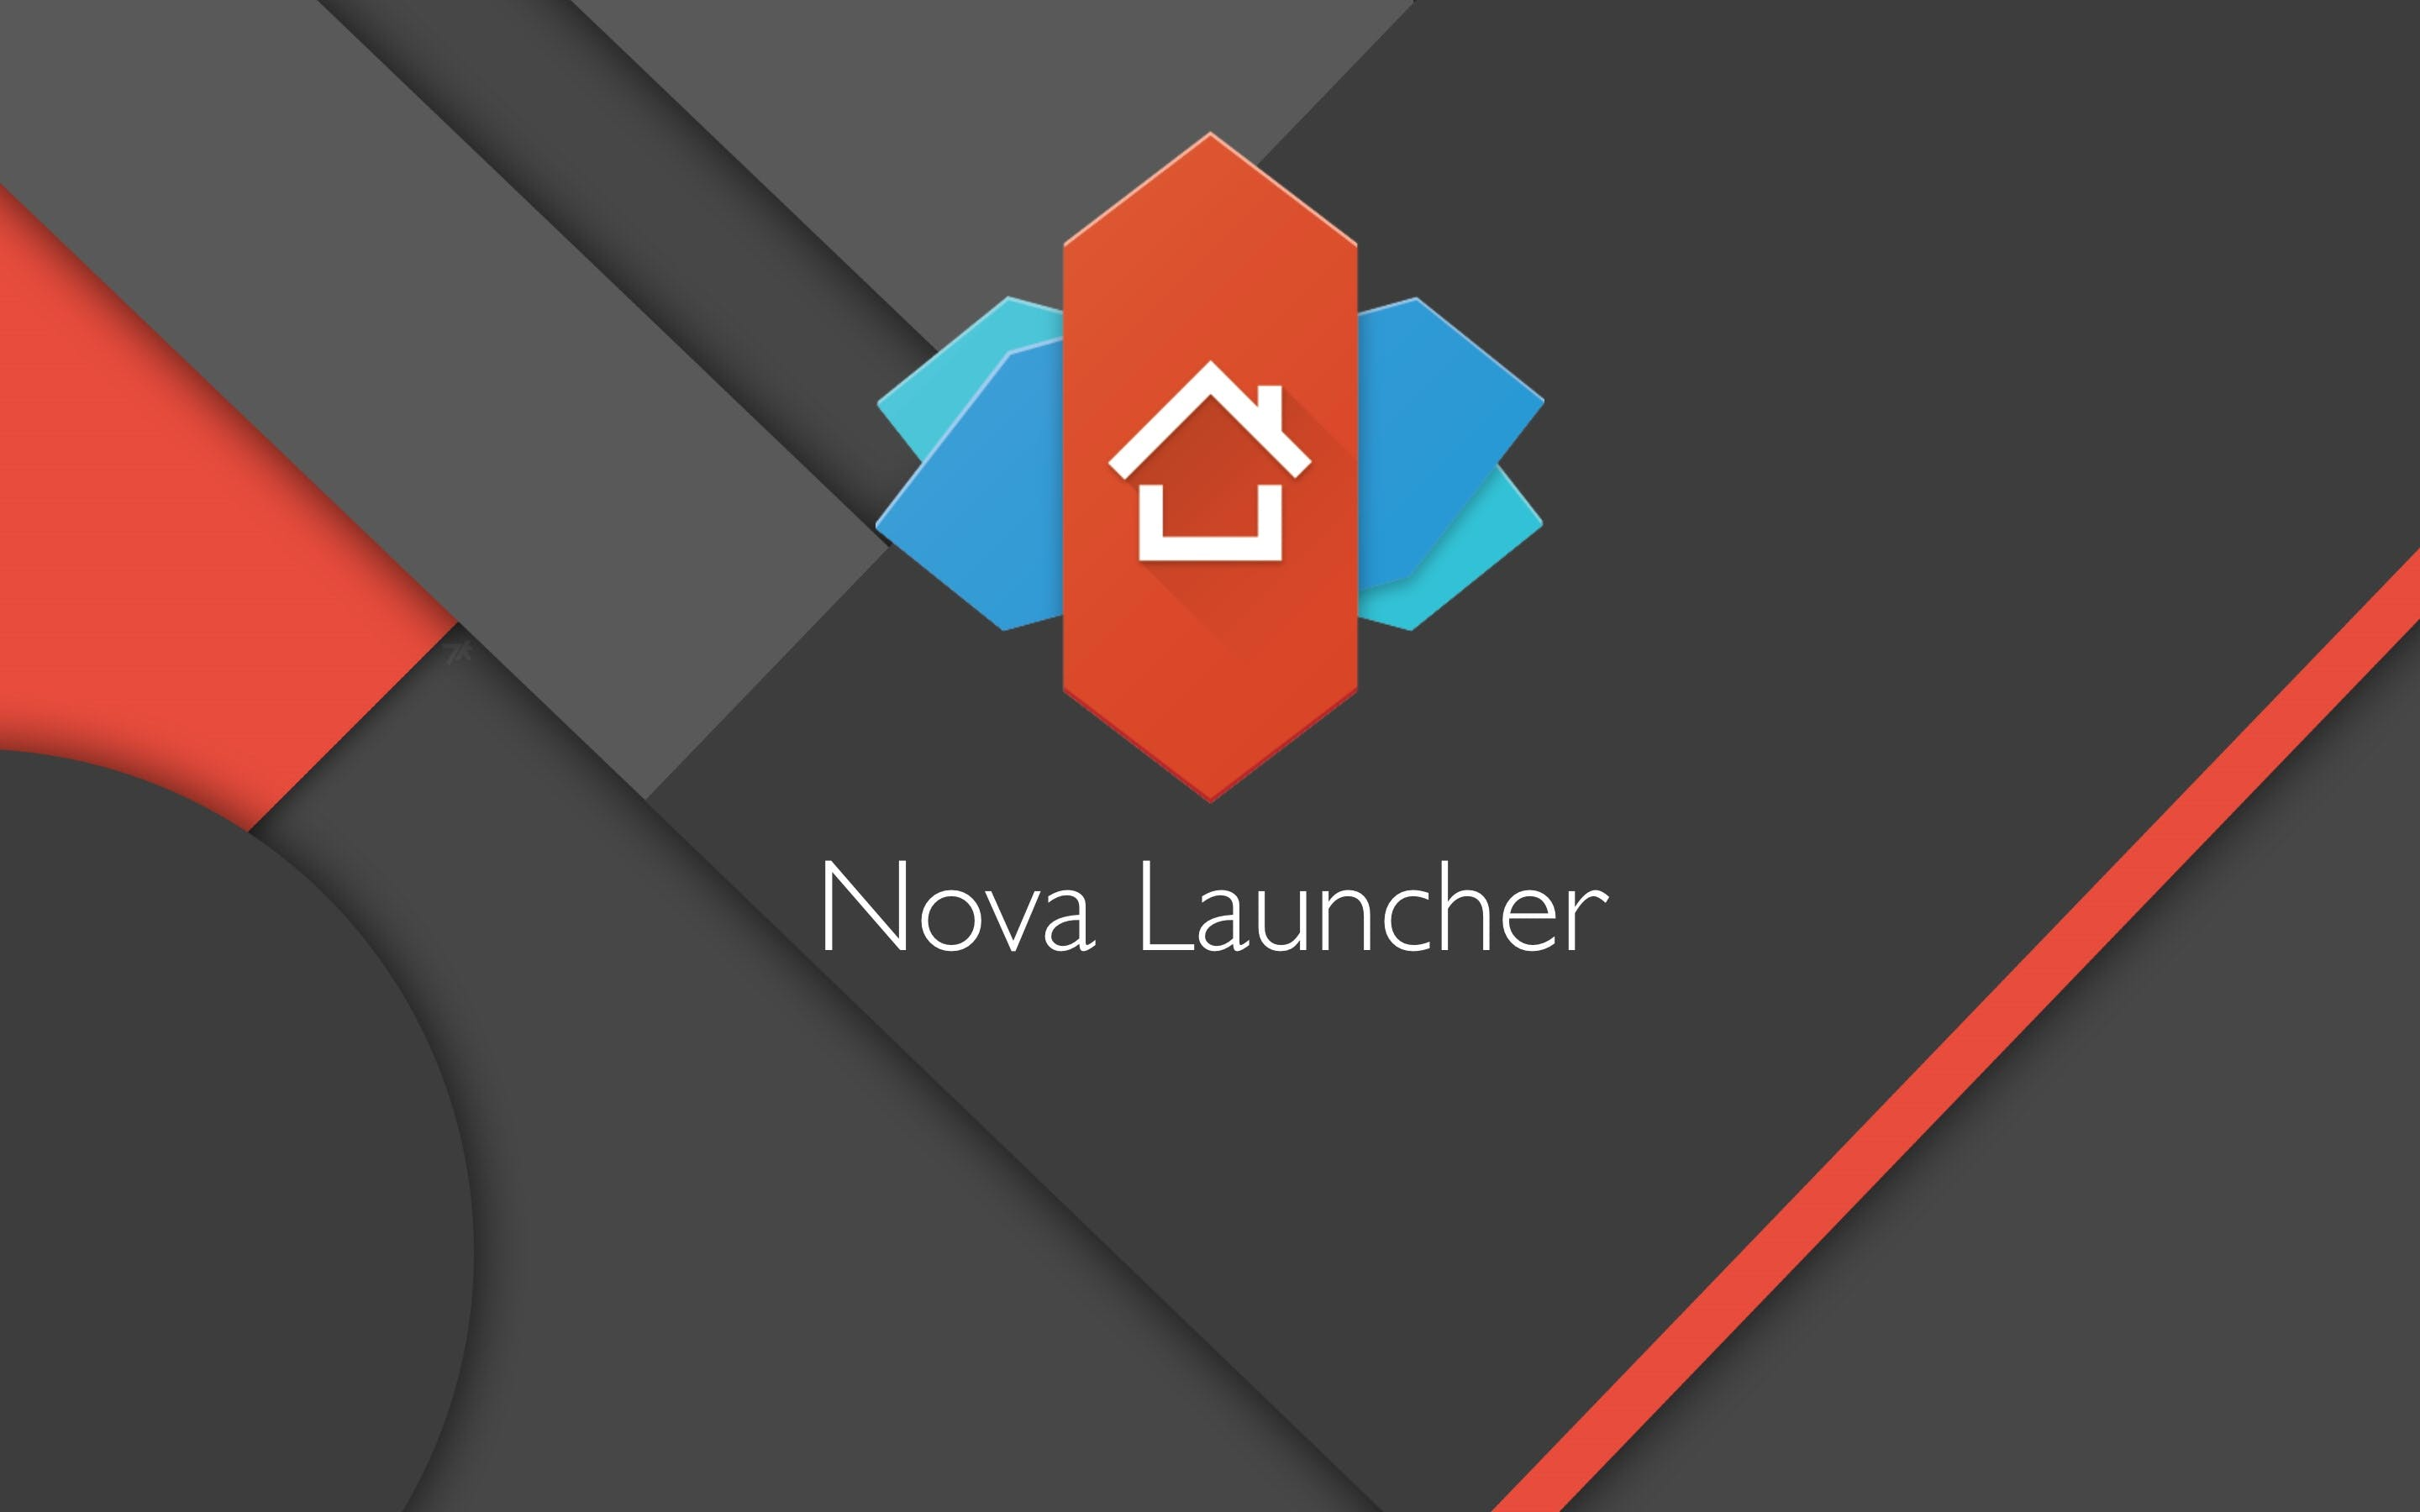 Fotos de stock gratuitas de google play, nova launcher